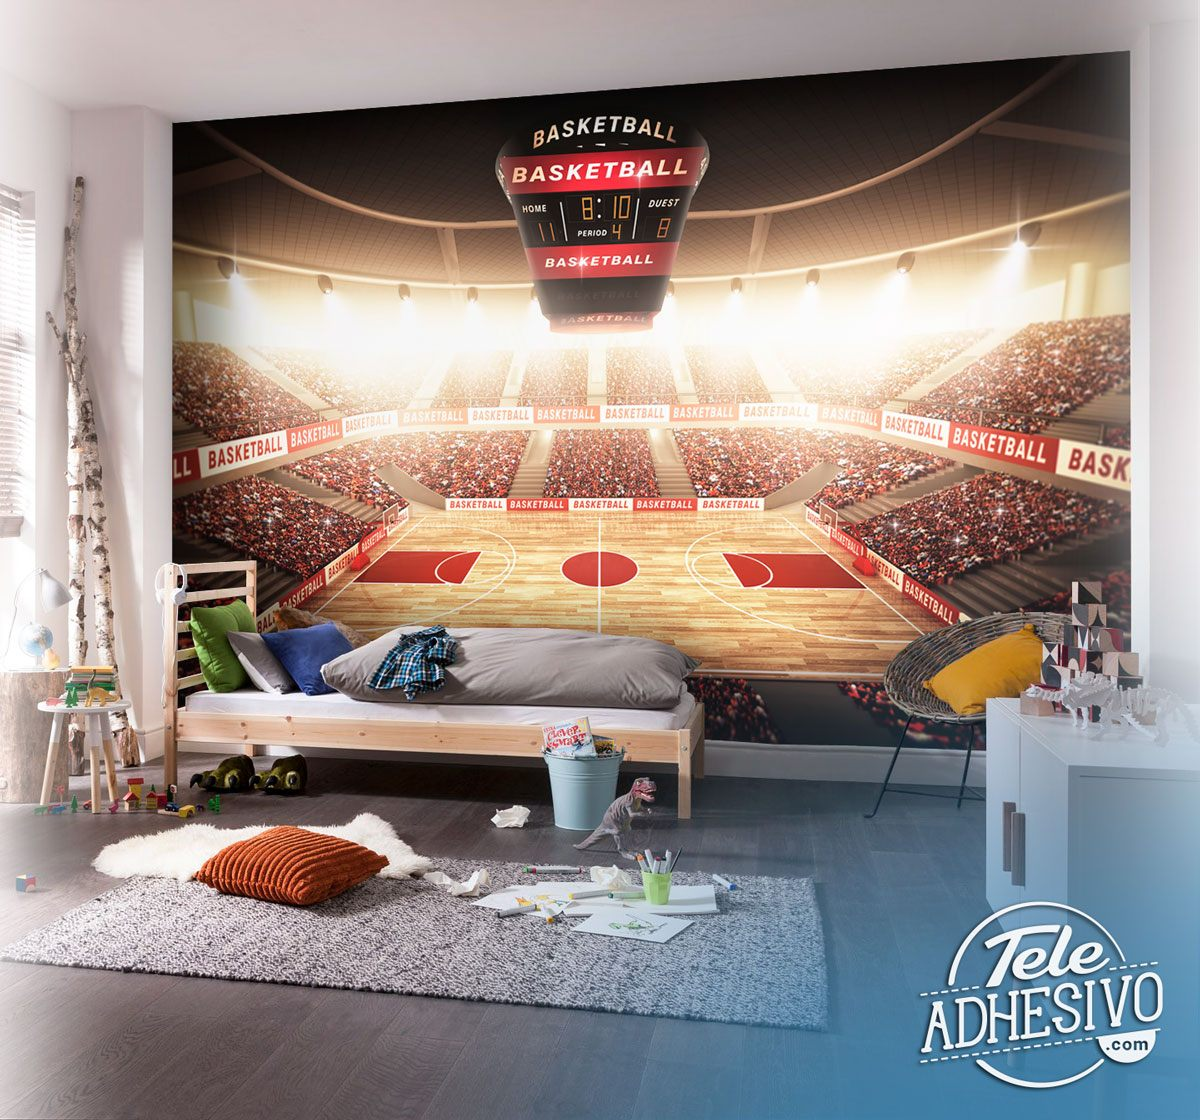 Wall Murals: Let the game begin